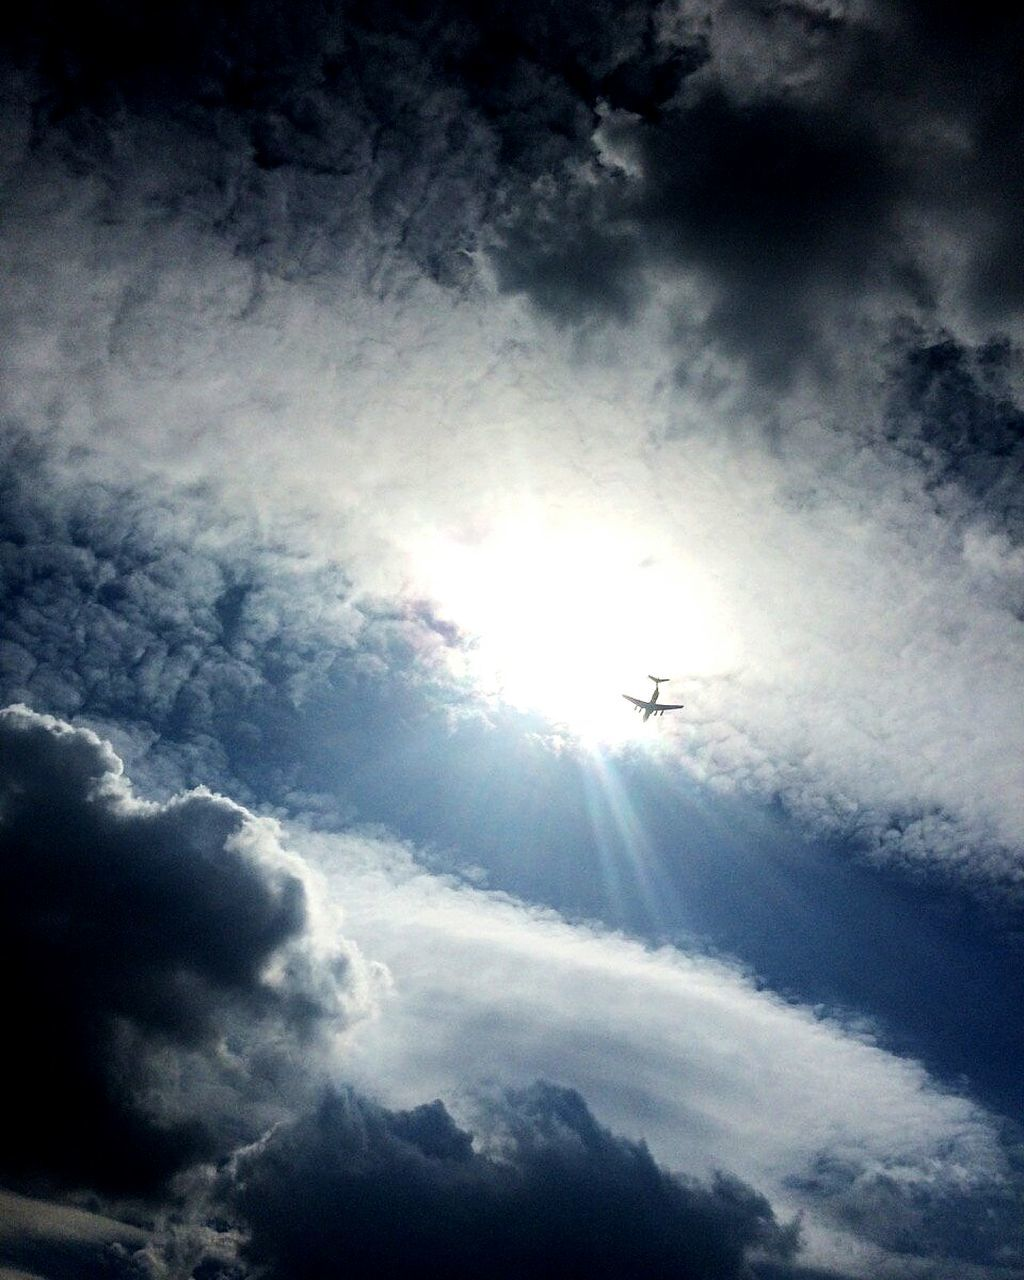 flying, transportation, sky, mode of transport, cloud - sky, low angle view, airplane, journey, silhouette, travel, air vehicle, mid-air, sun, outdoors, nature, day, no people, airplane wing